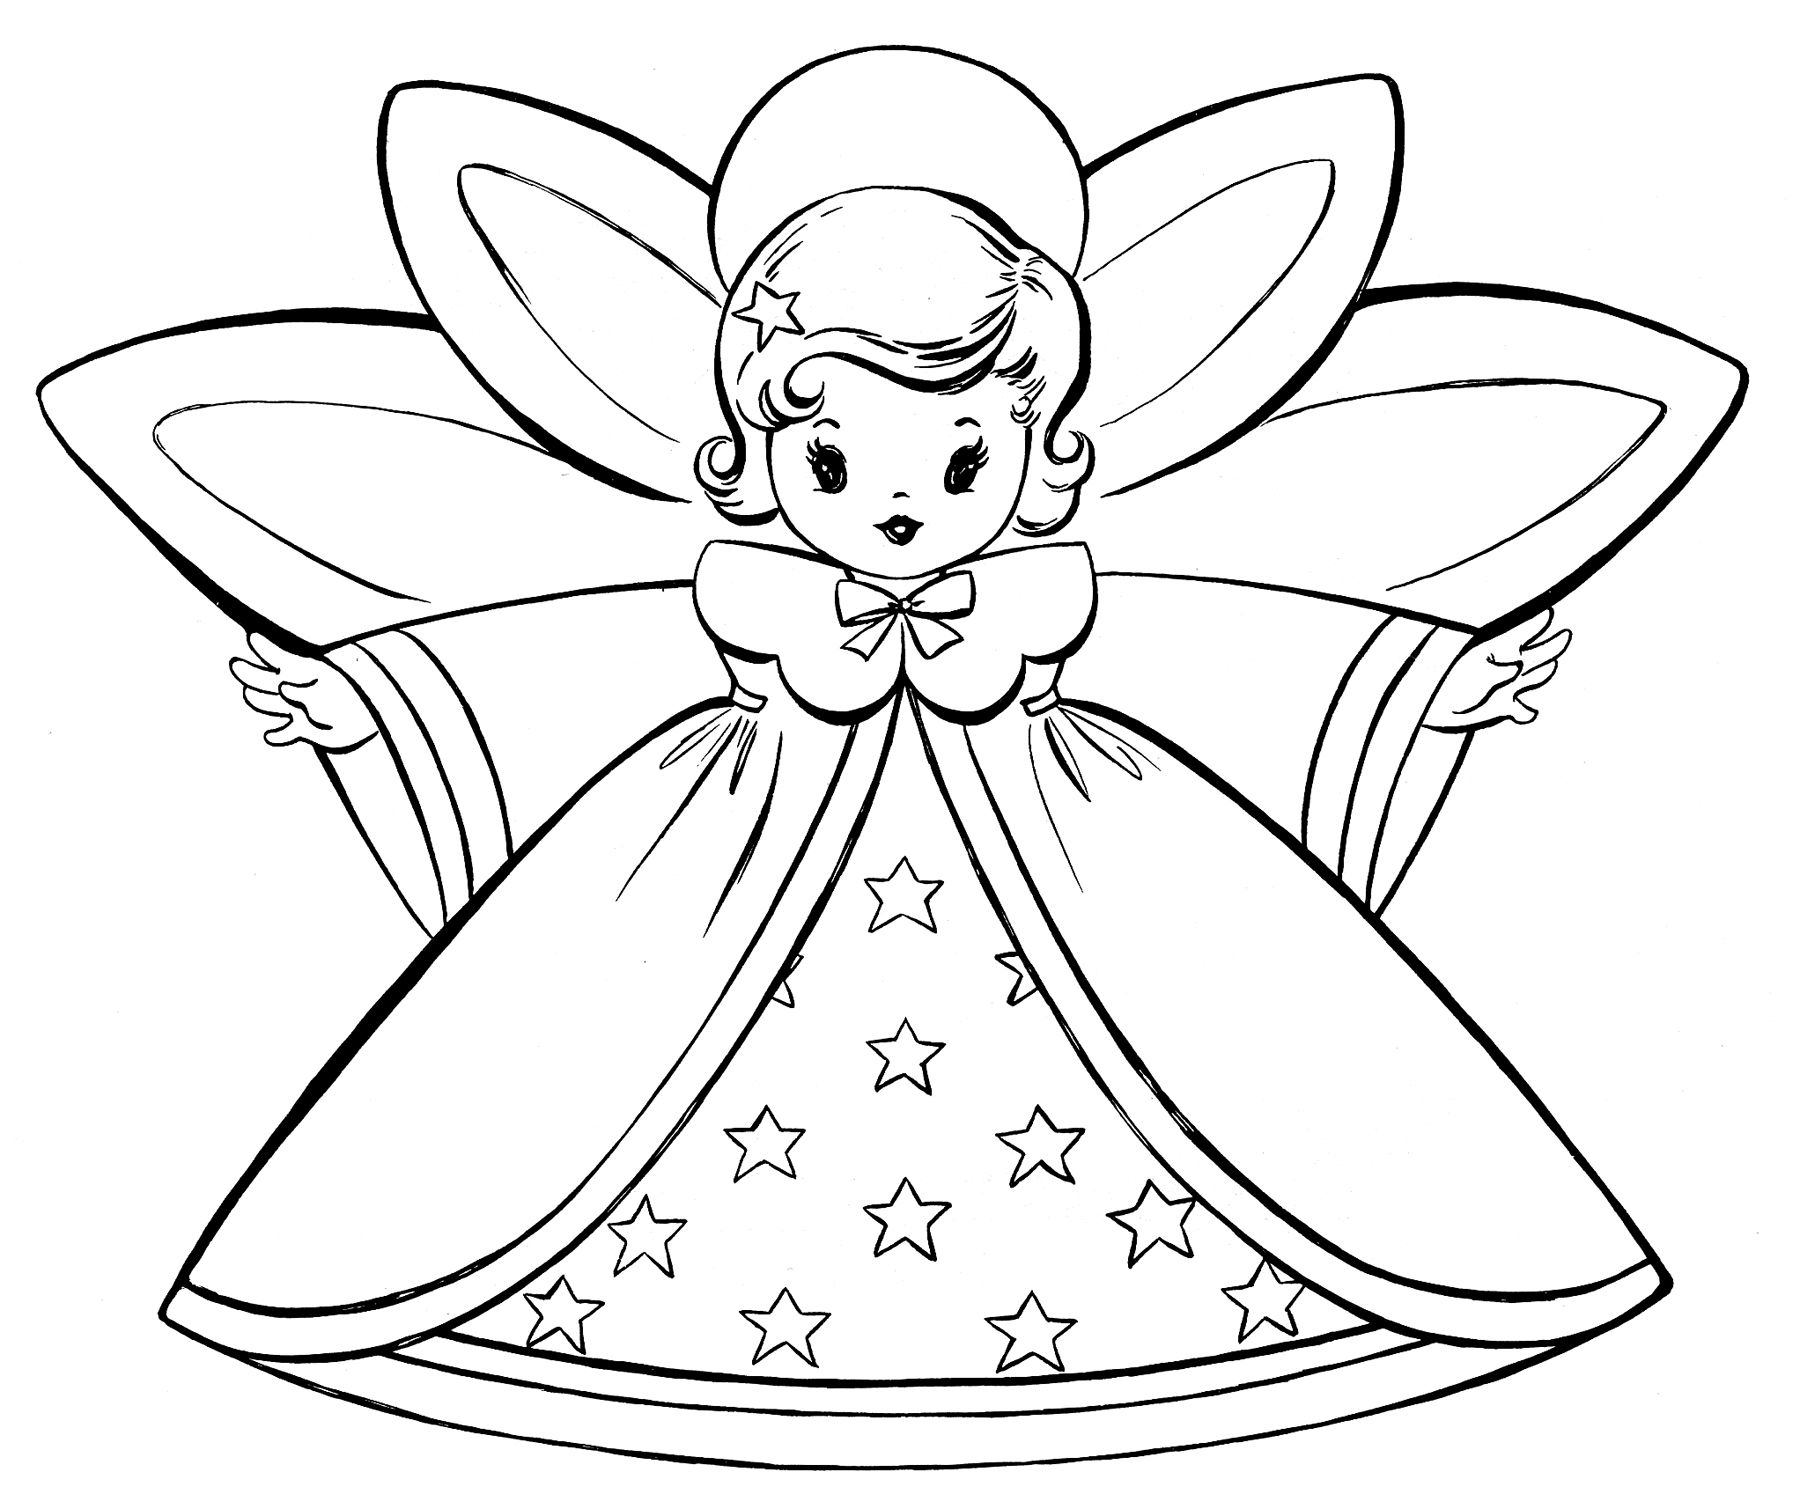 12 Free Printable Christmas Coloring Pages Printable Christmas Coloring Pages Free Christmas Coloring Pages Angel Coloring Pages